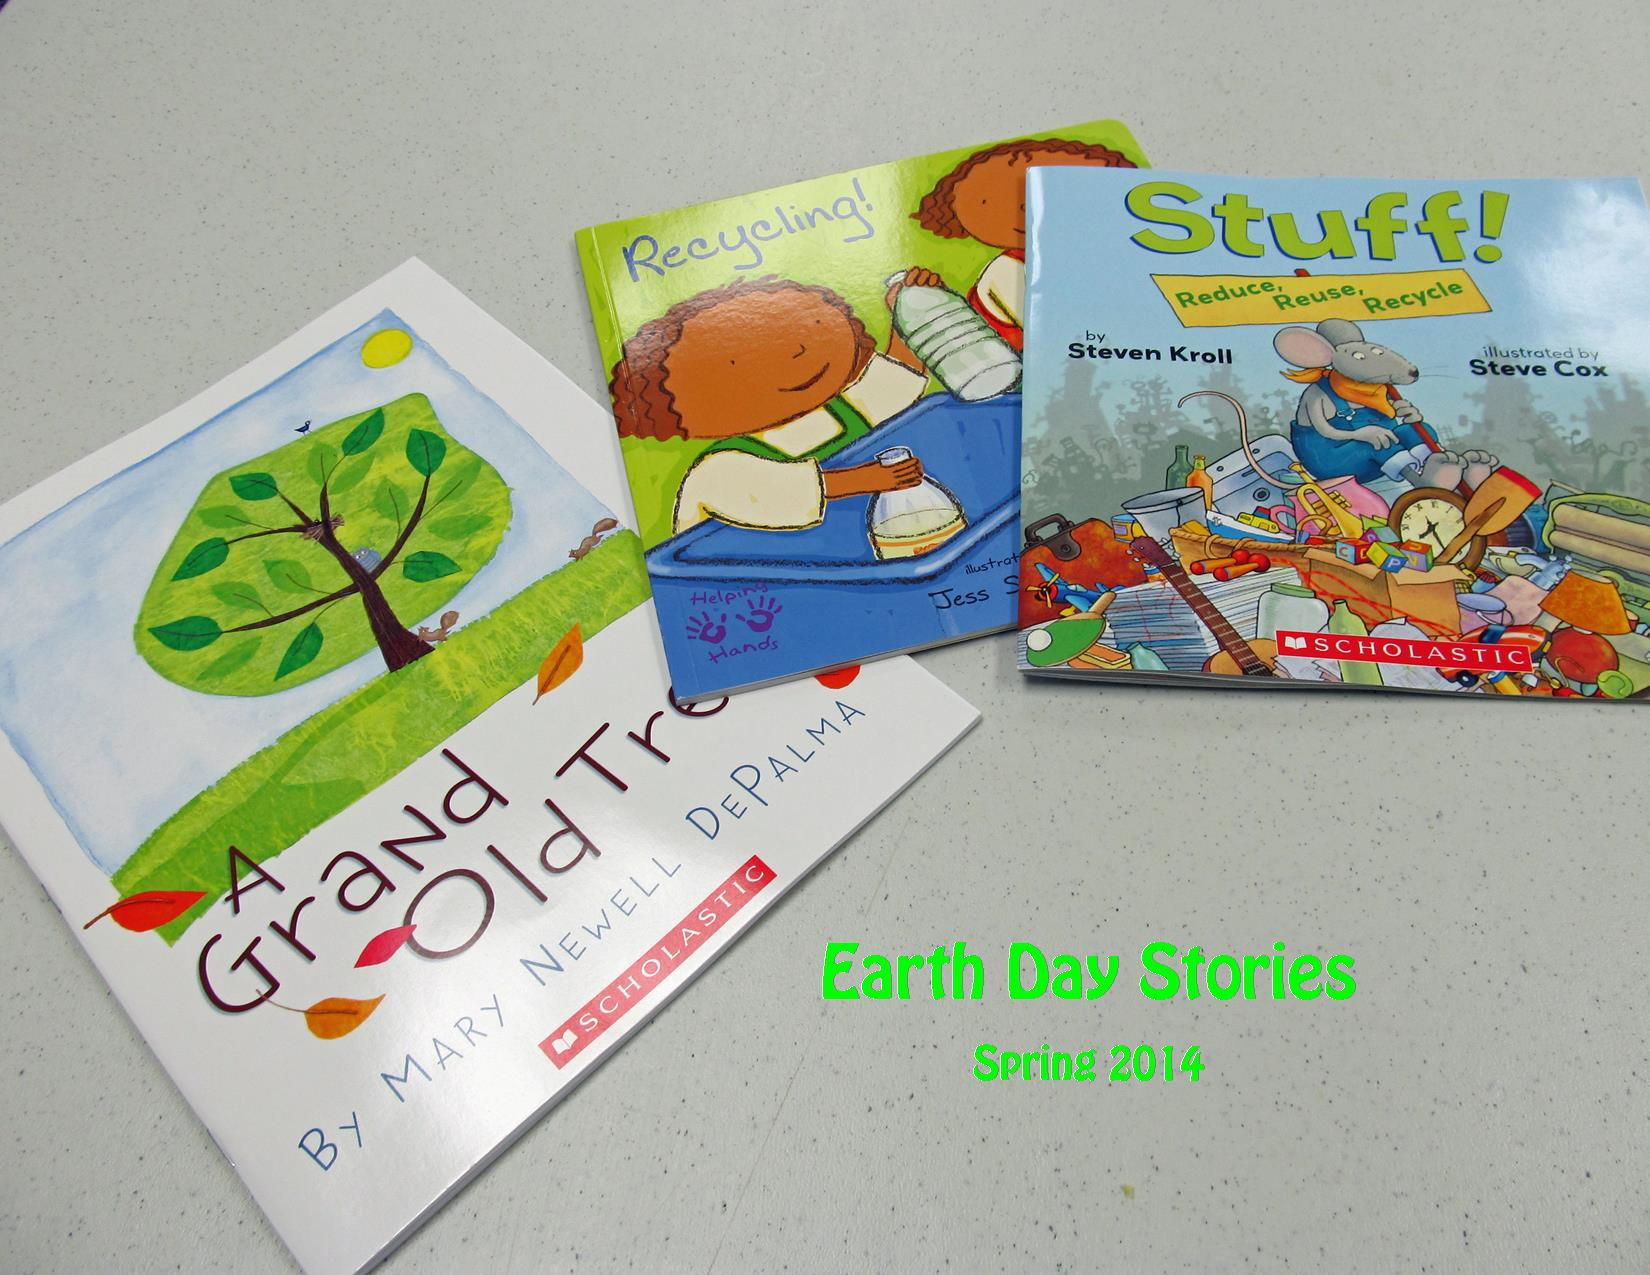 4-2014 Earth Day Stories